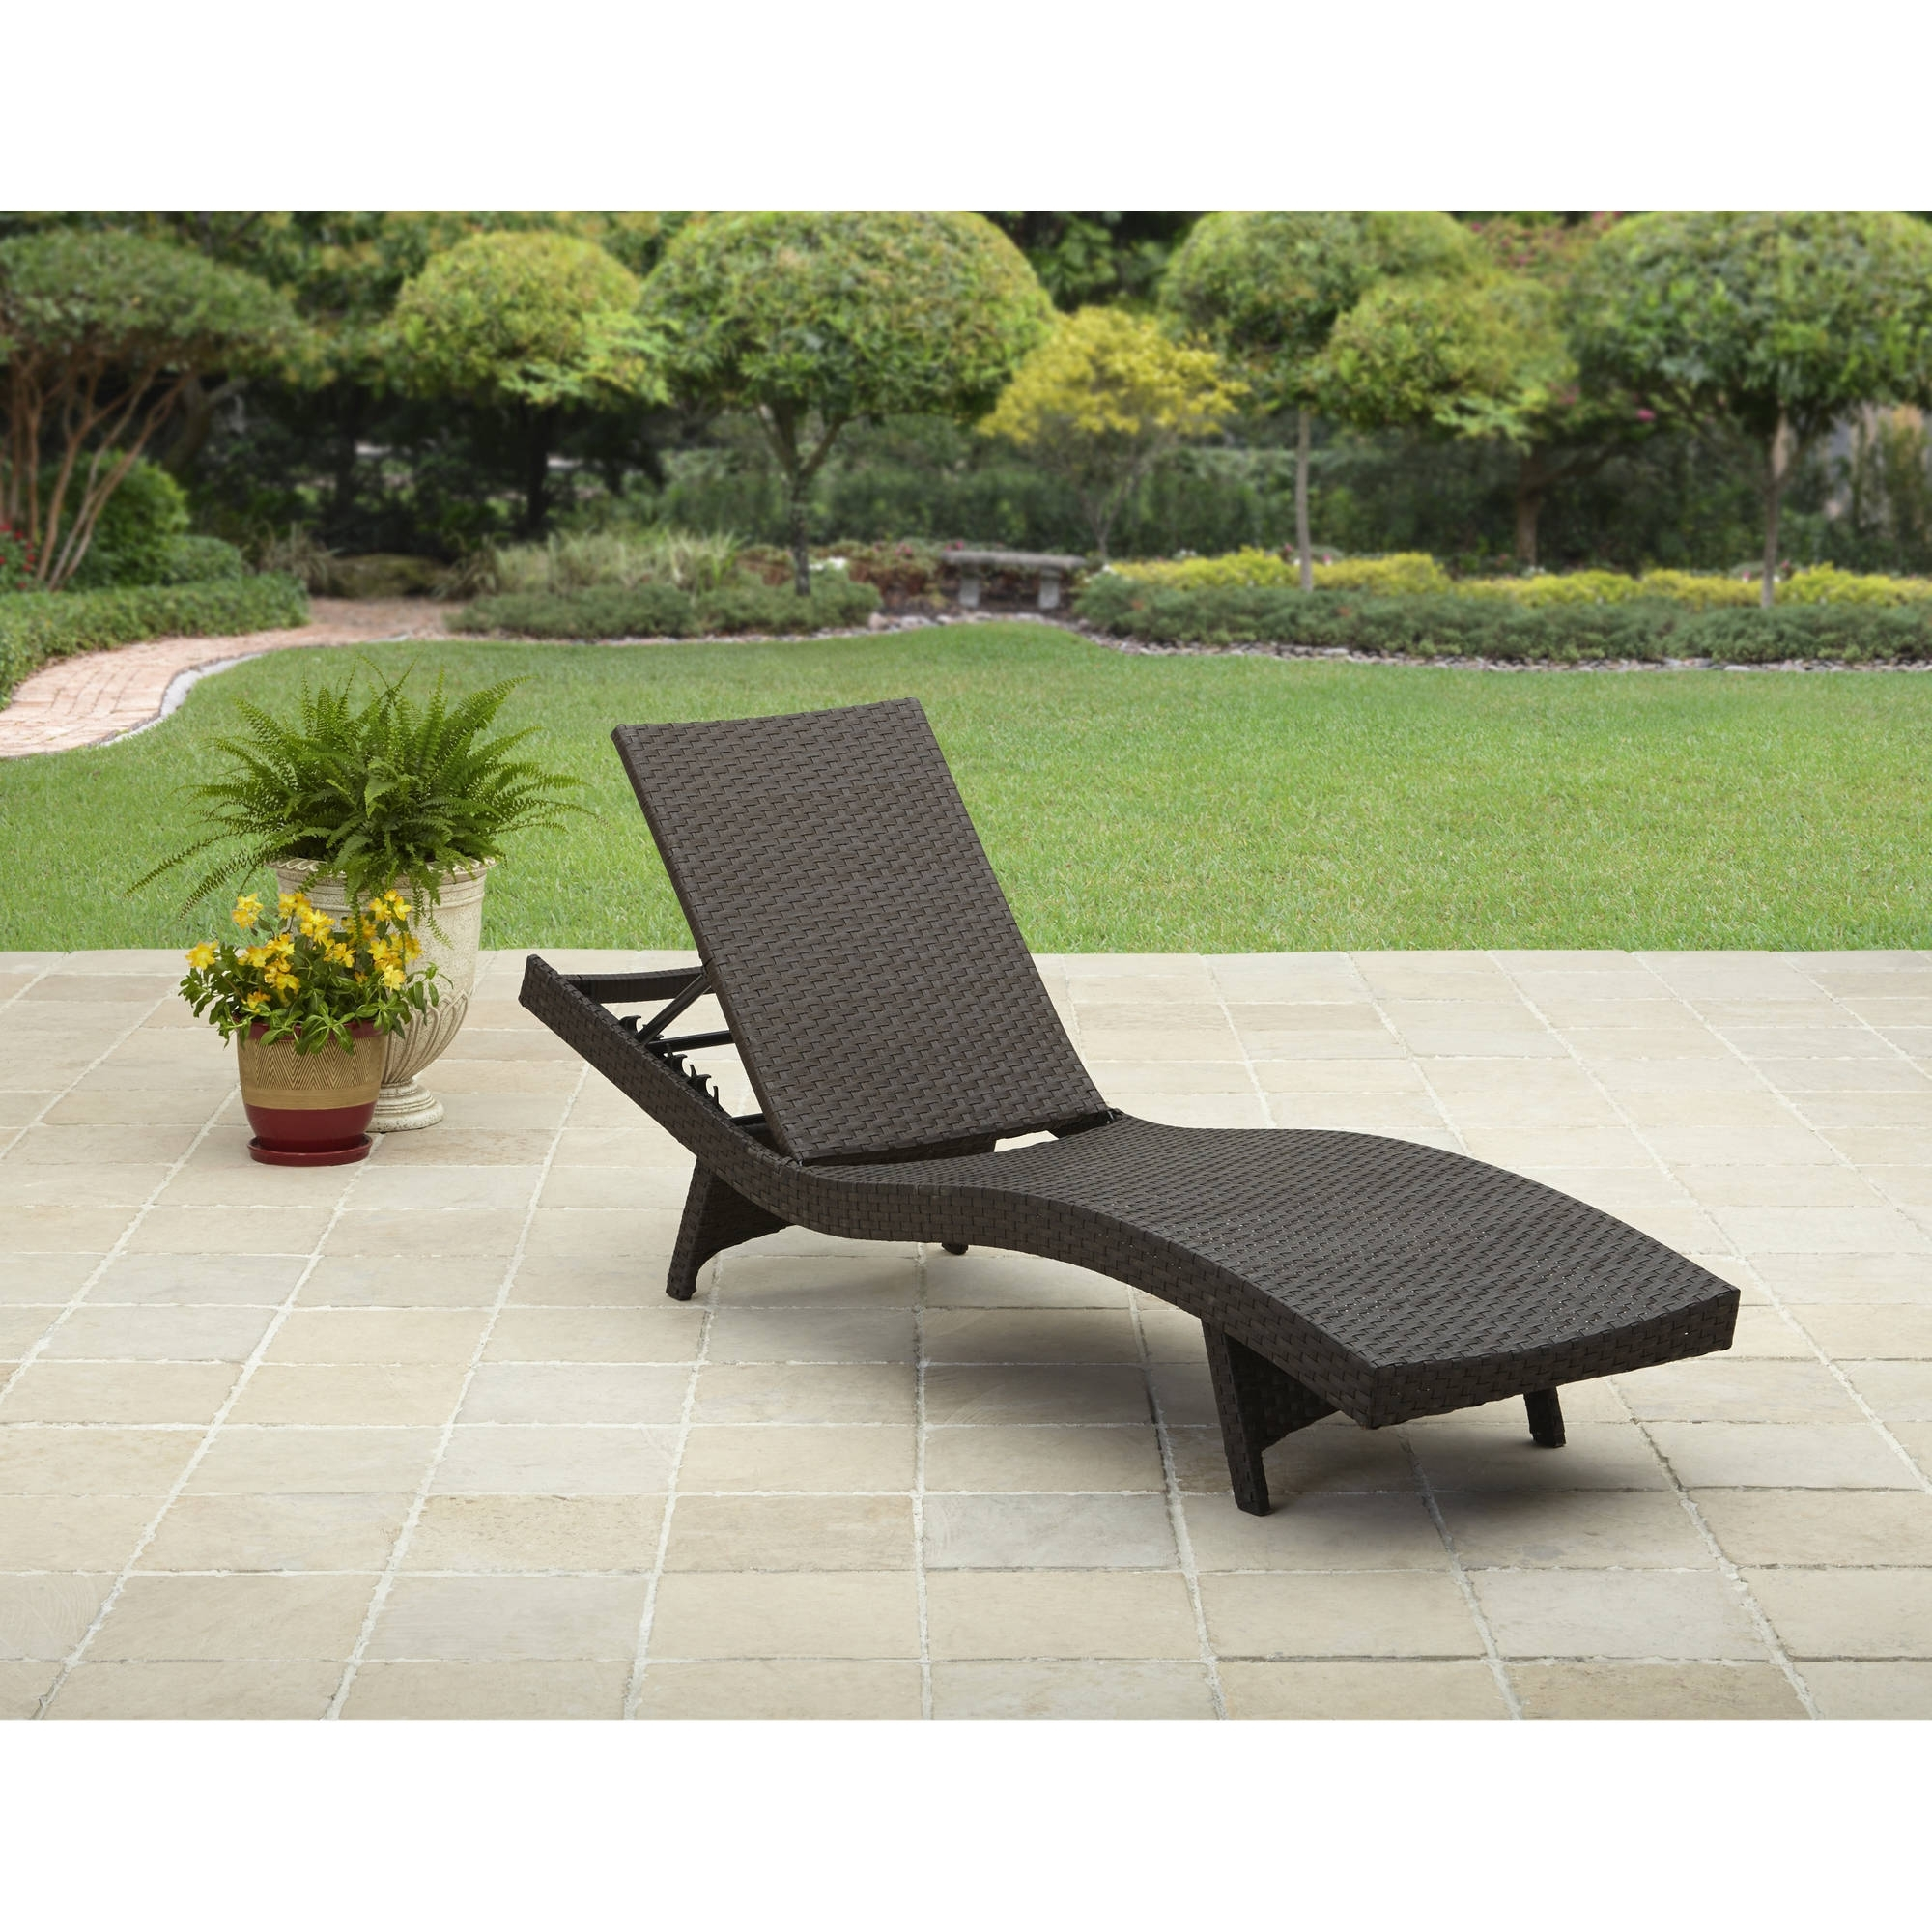 Walmart Chaise Lounges With Favorite Better Homes And Gardens Avila Beach Chaise – Walmart (View 13 of 15)